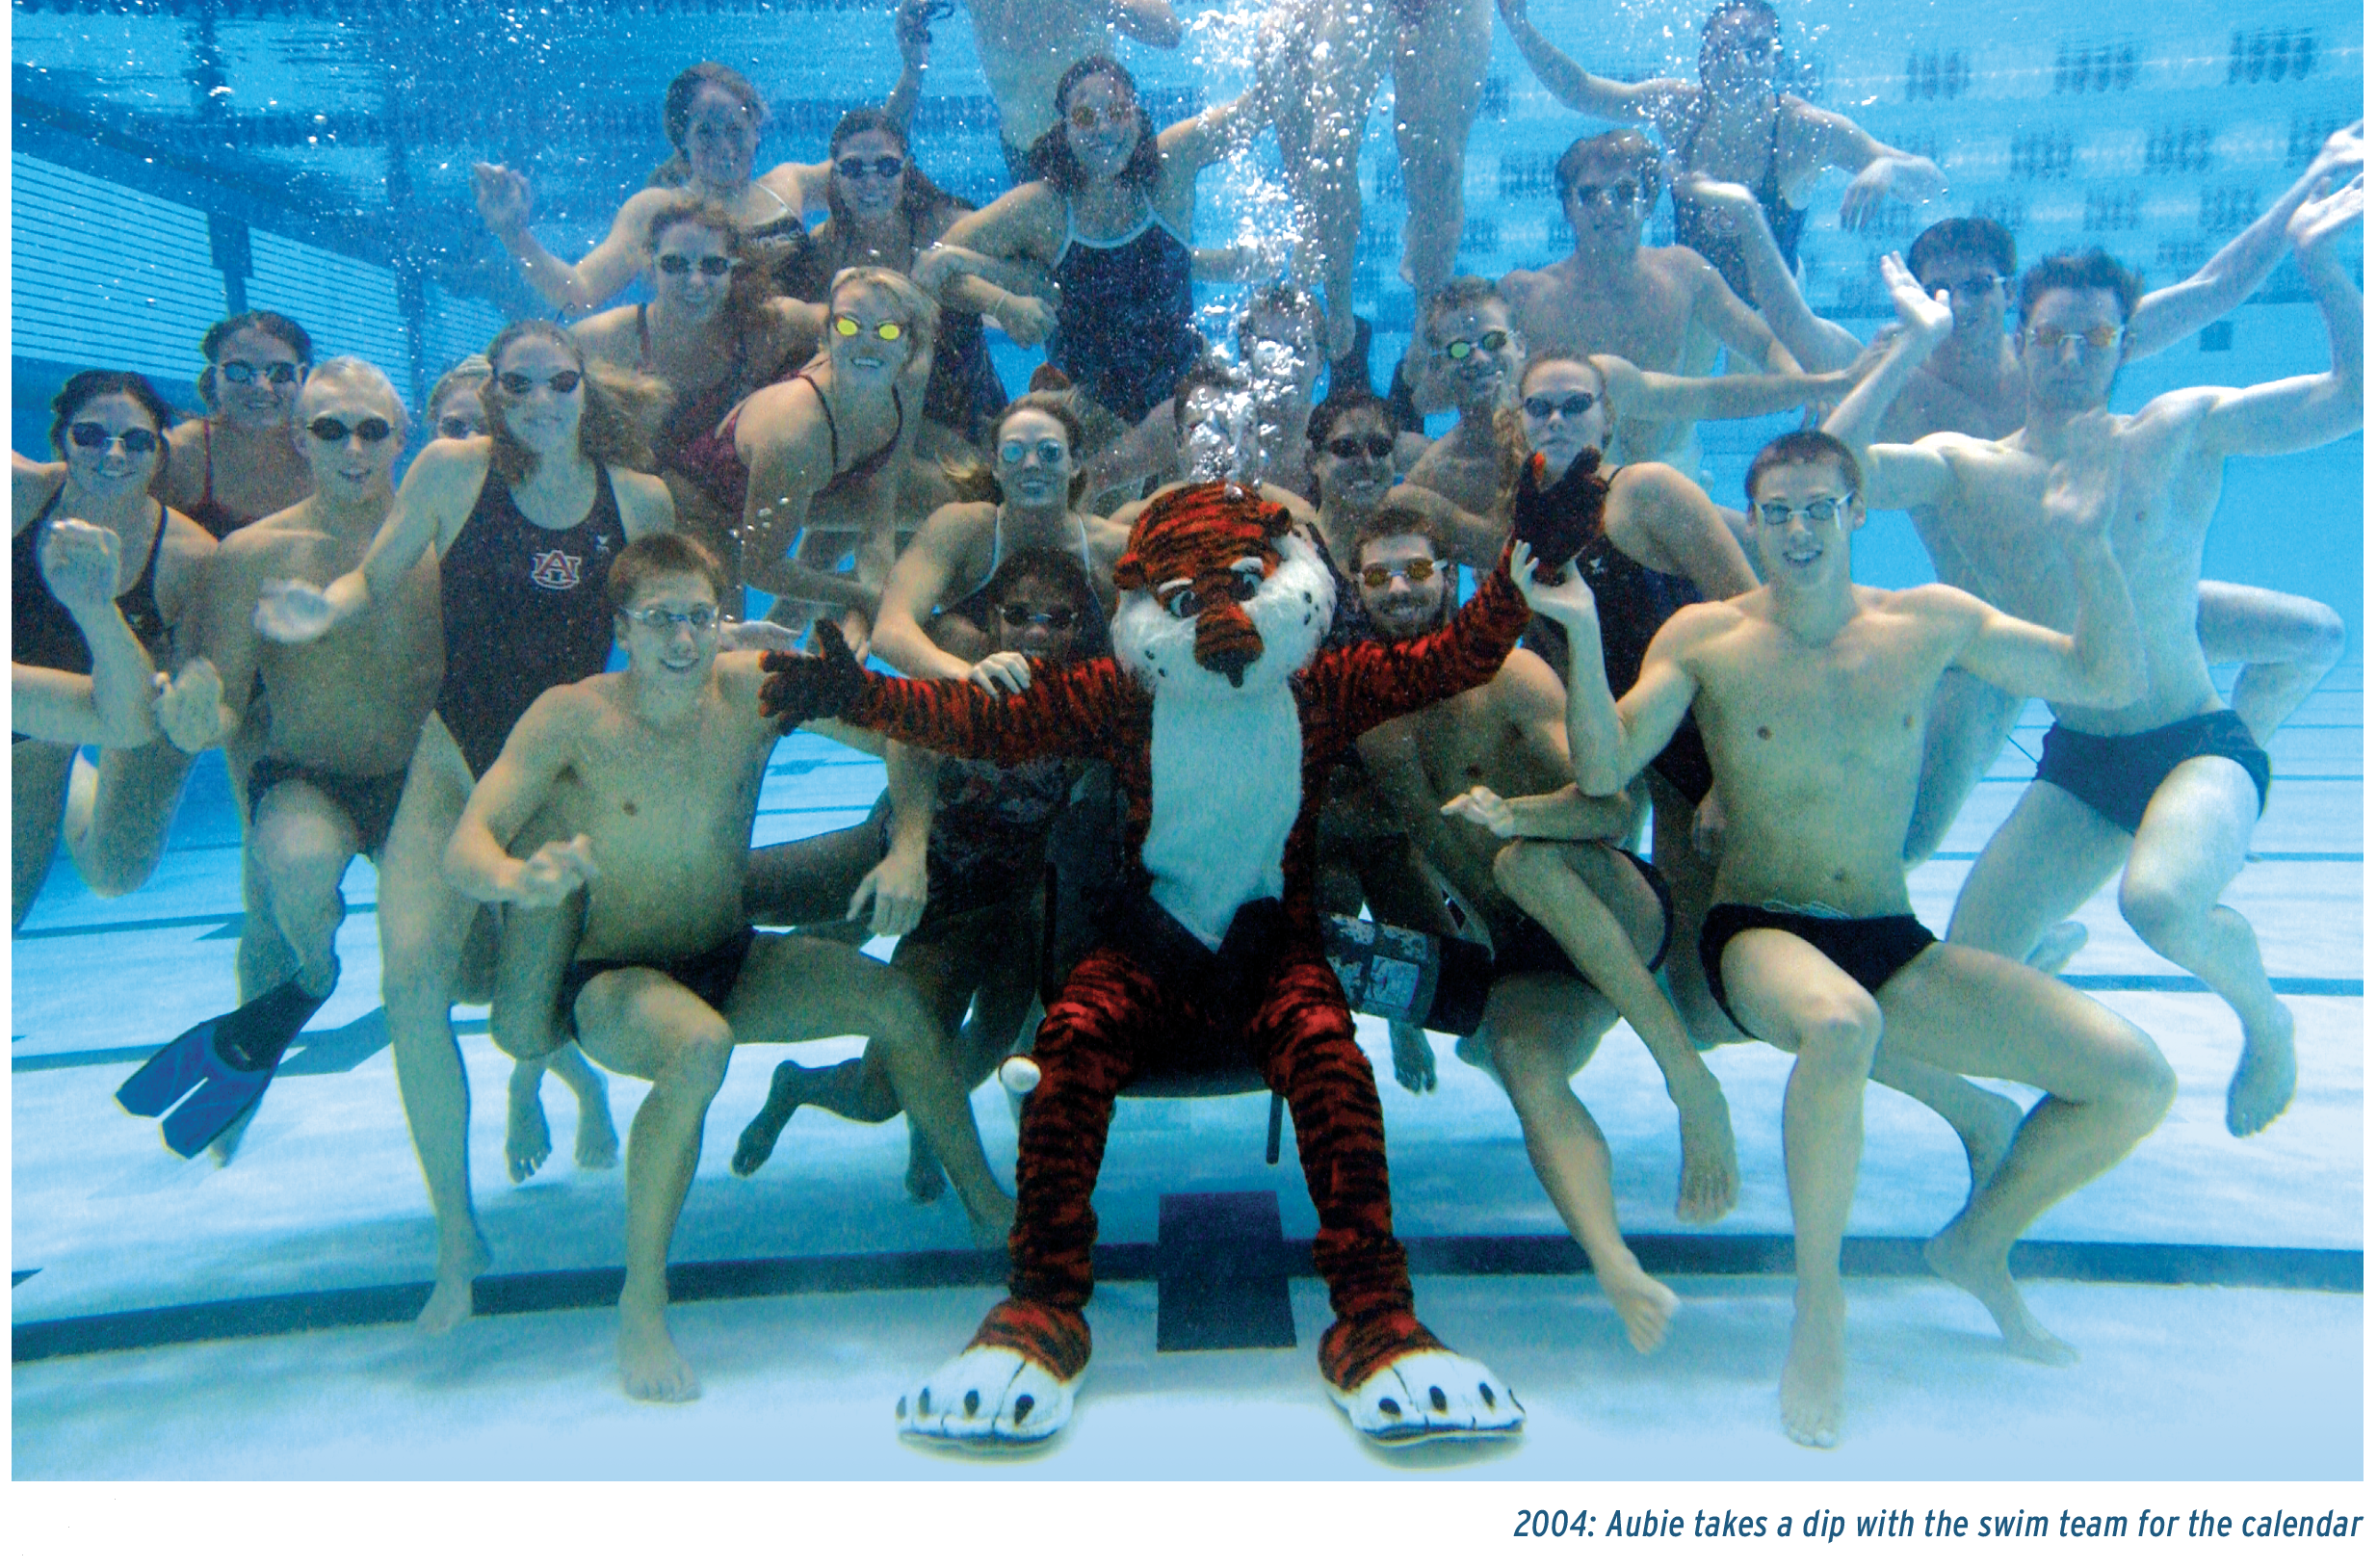 2004: Aubie takes a dip with the swim team for the calendar